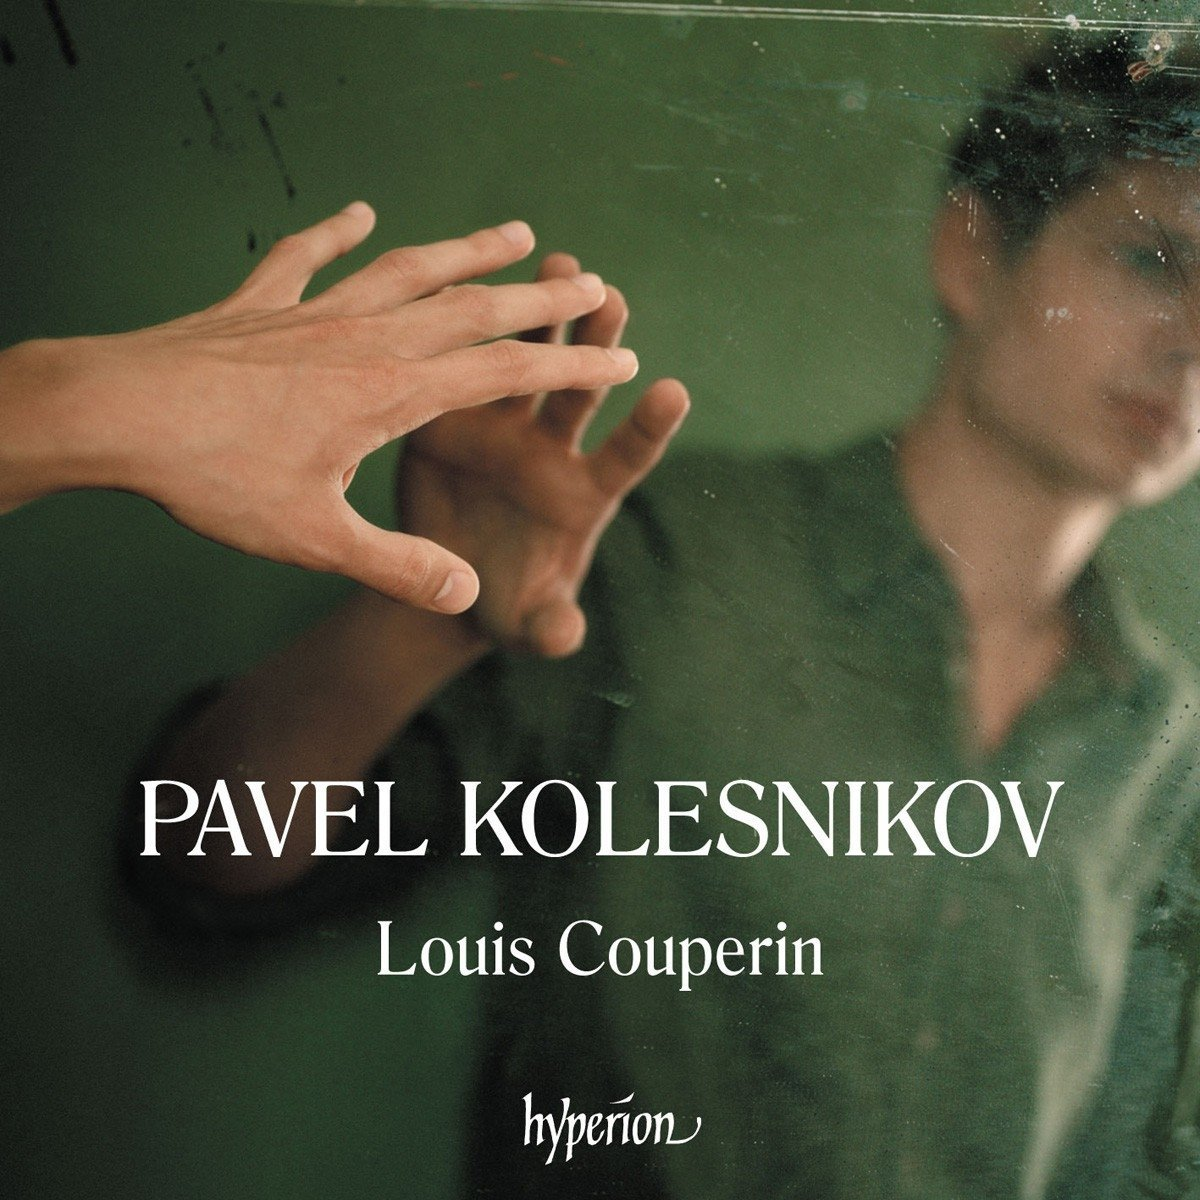 Kolesnikov's Louis Couperin CD